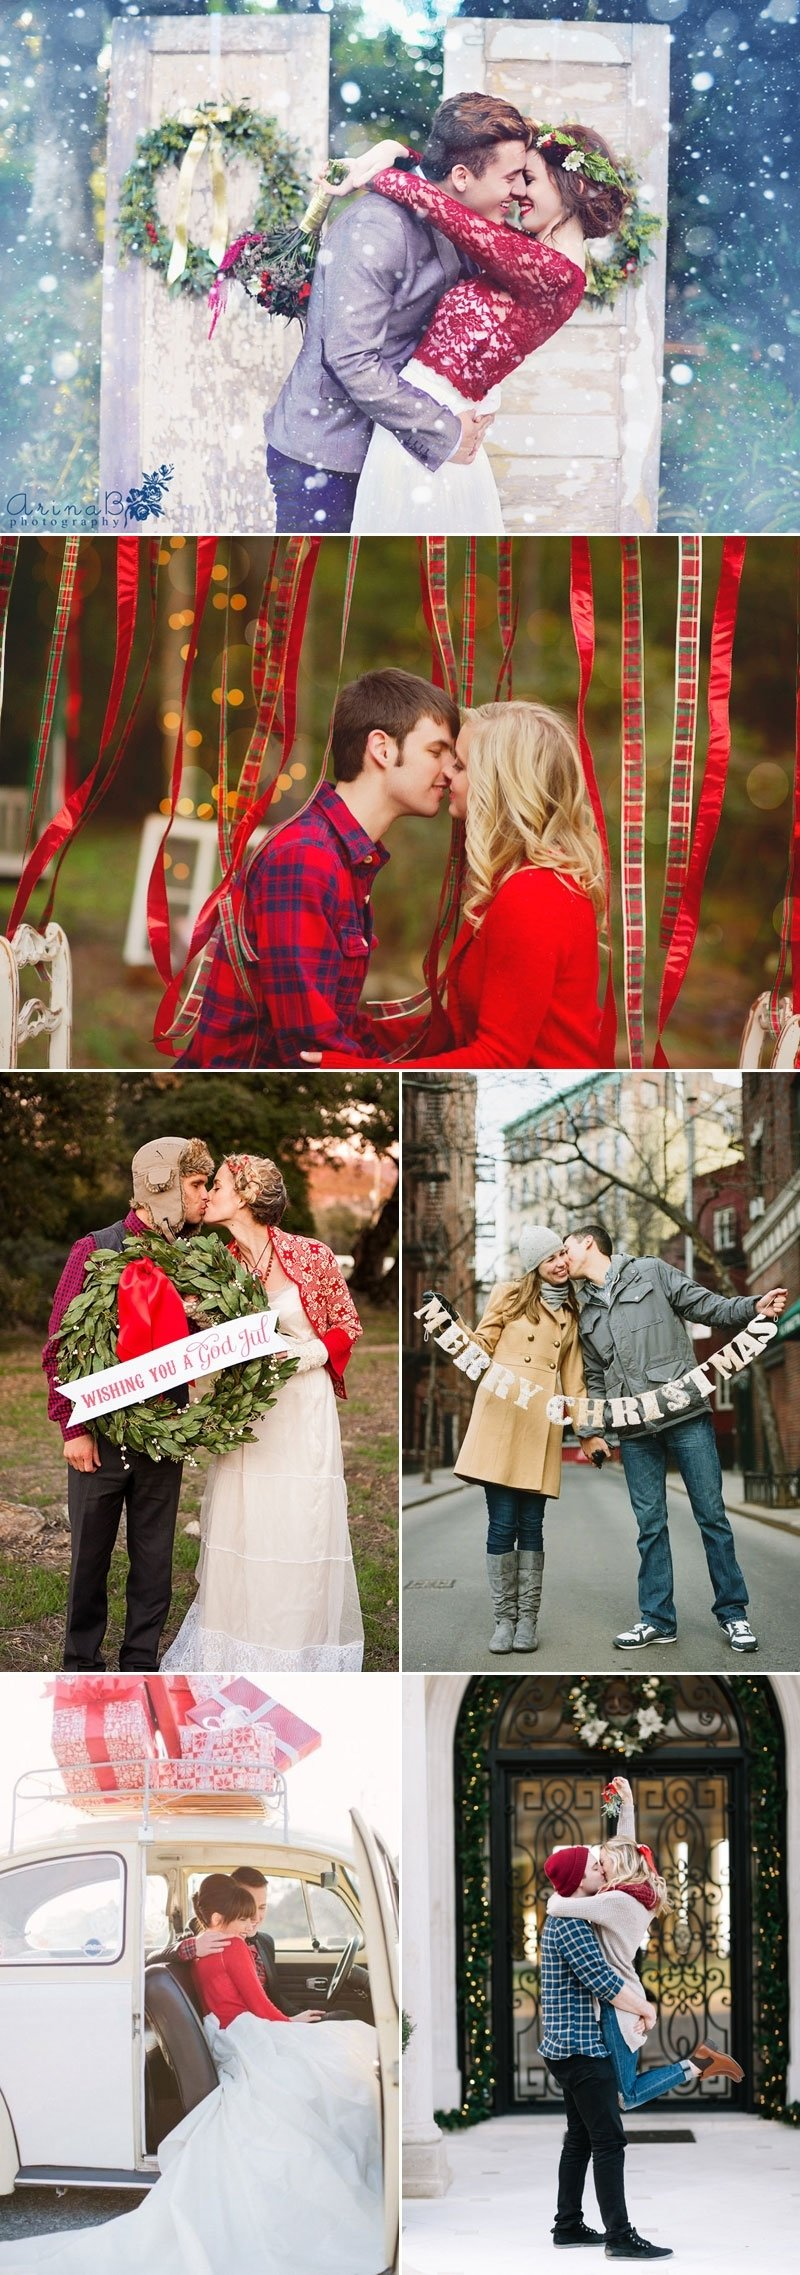 10 Most Recommended Cute Christmas Picture Ideas For Couples 20 cute christmas photo ideas for couples to show love praise wedding 5 2020